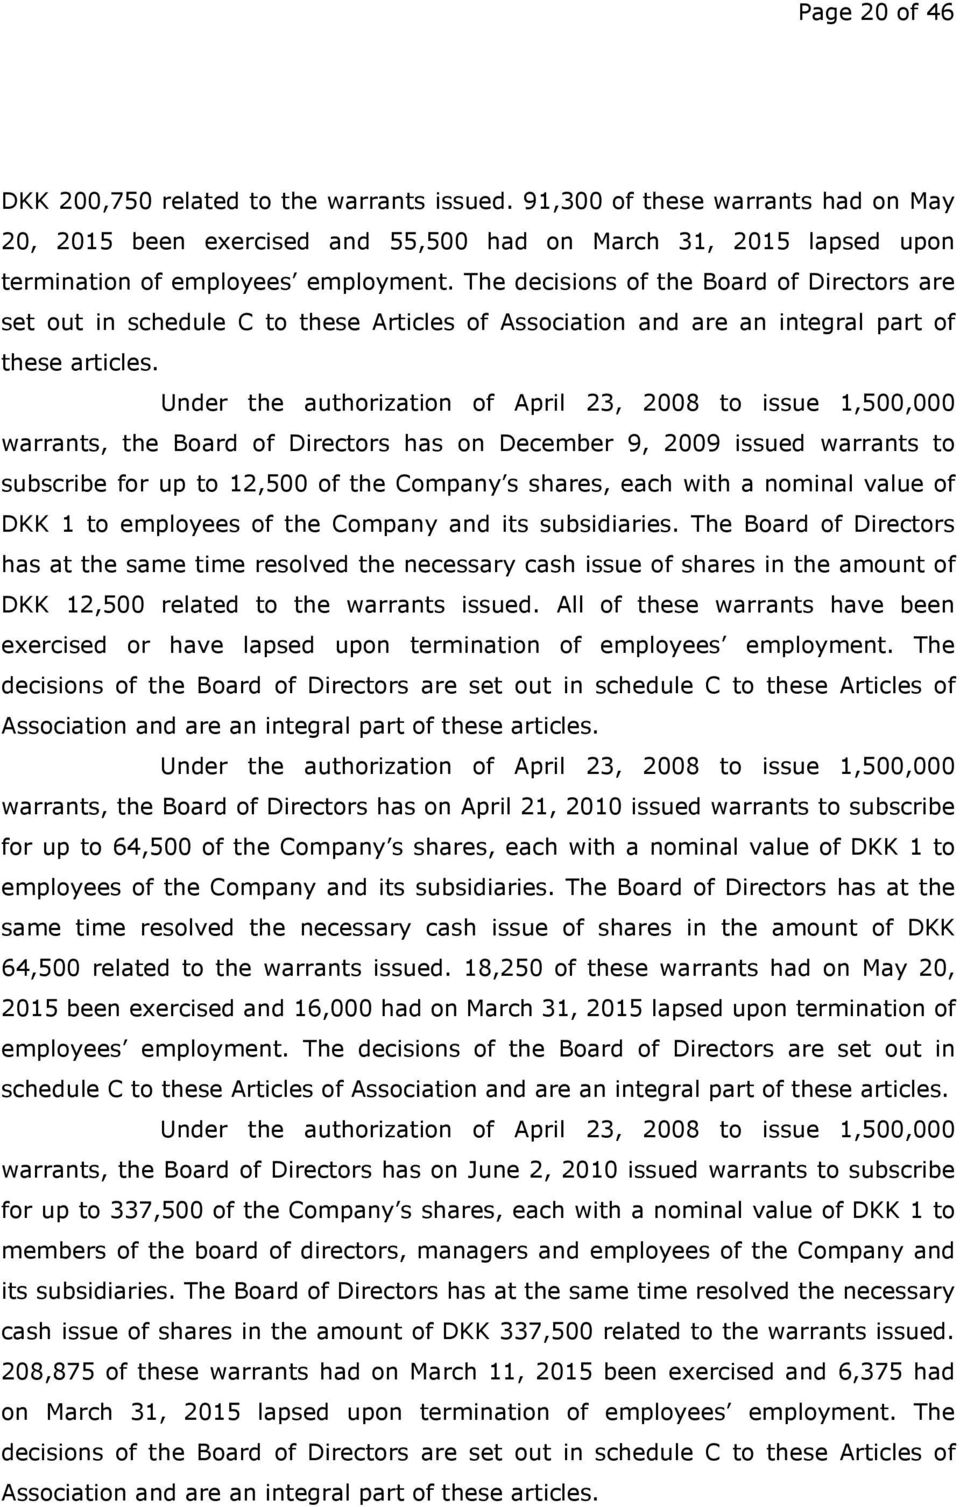 Under the authorization of April 23, 2008 to issue 1,500,000 warrants, the Board of Directors has on December 9, 2009 issued warrants to subscribe for up to 12,500 of the Company s shares, each with